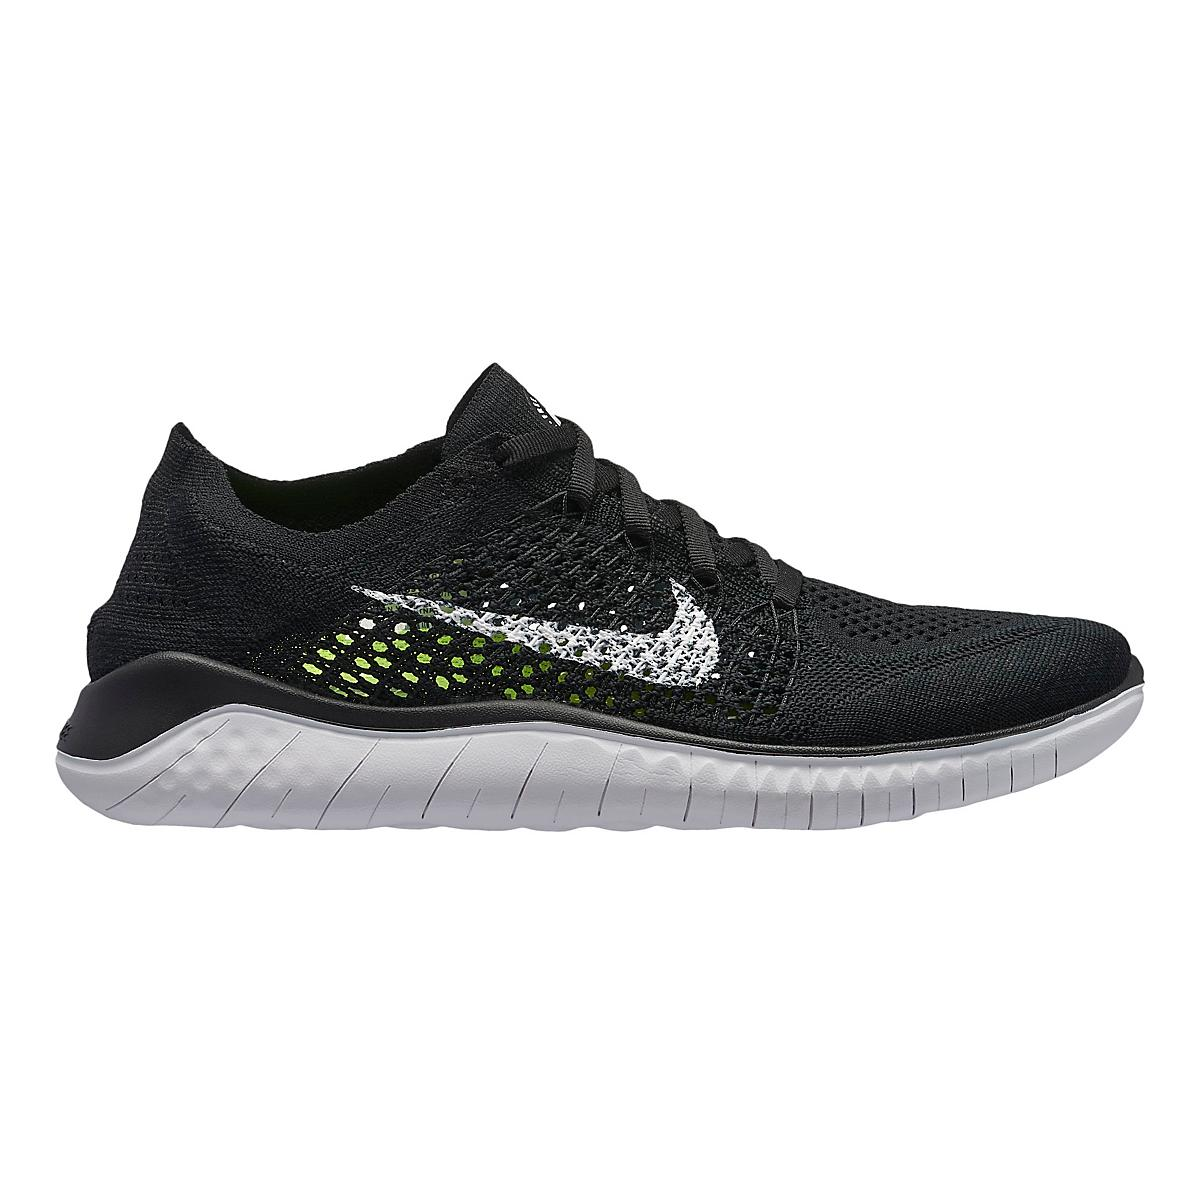 hot sale online ae694 95423 Womens Nike Free RN Flyknit 2018 Running Shoe at Road Runner Sports